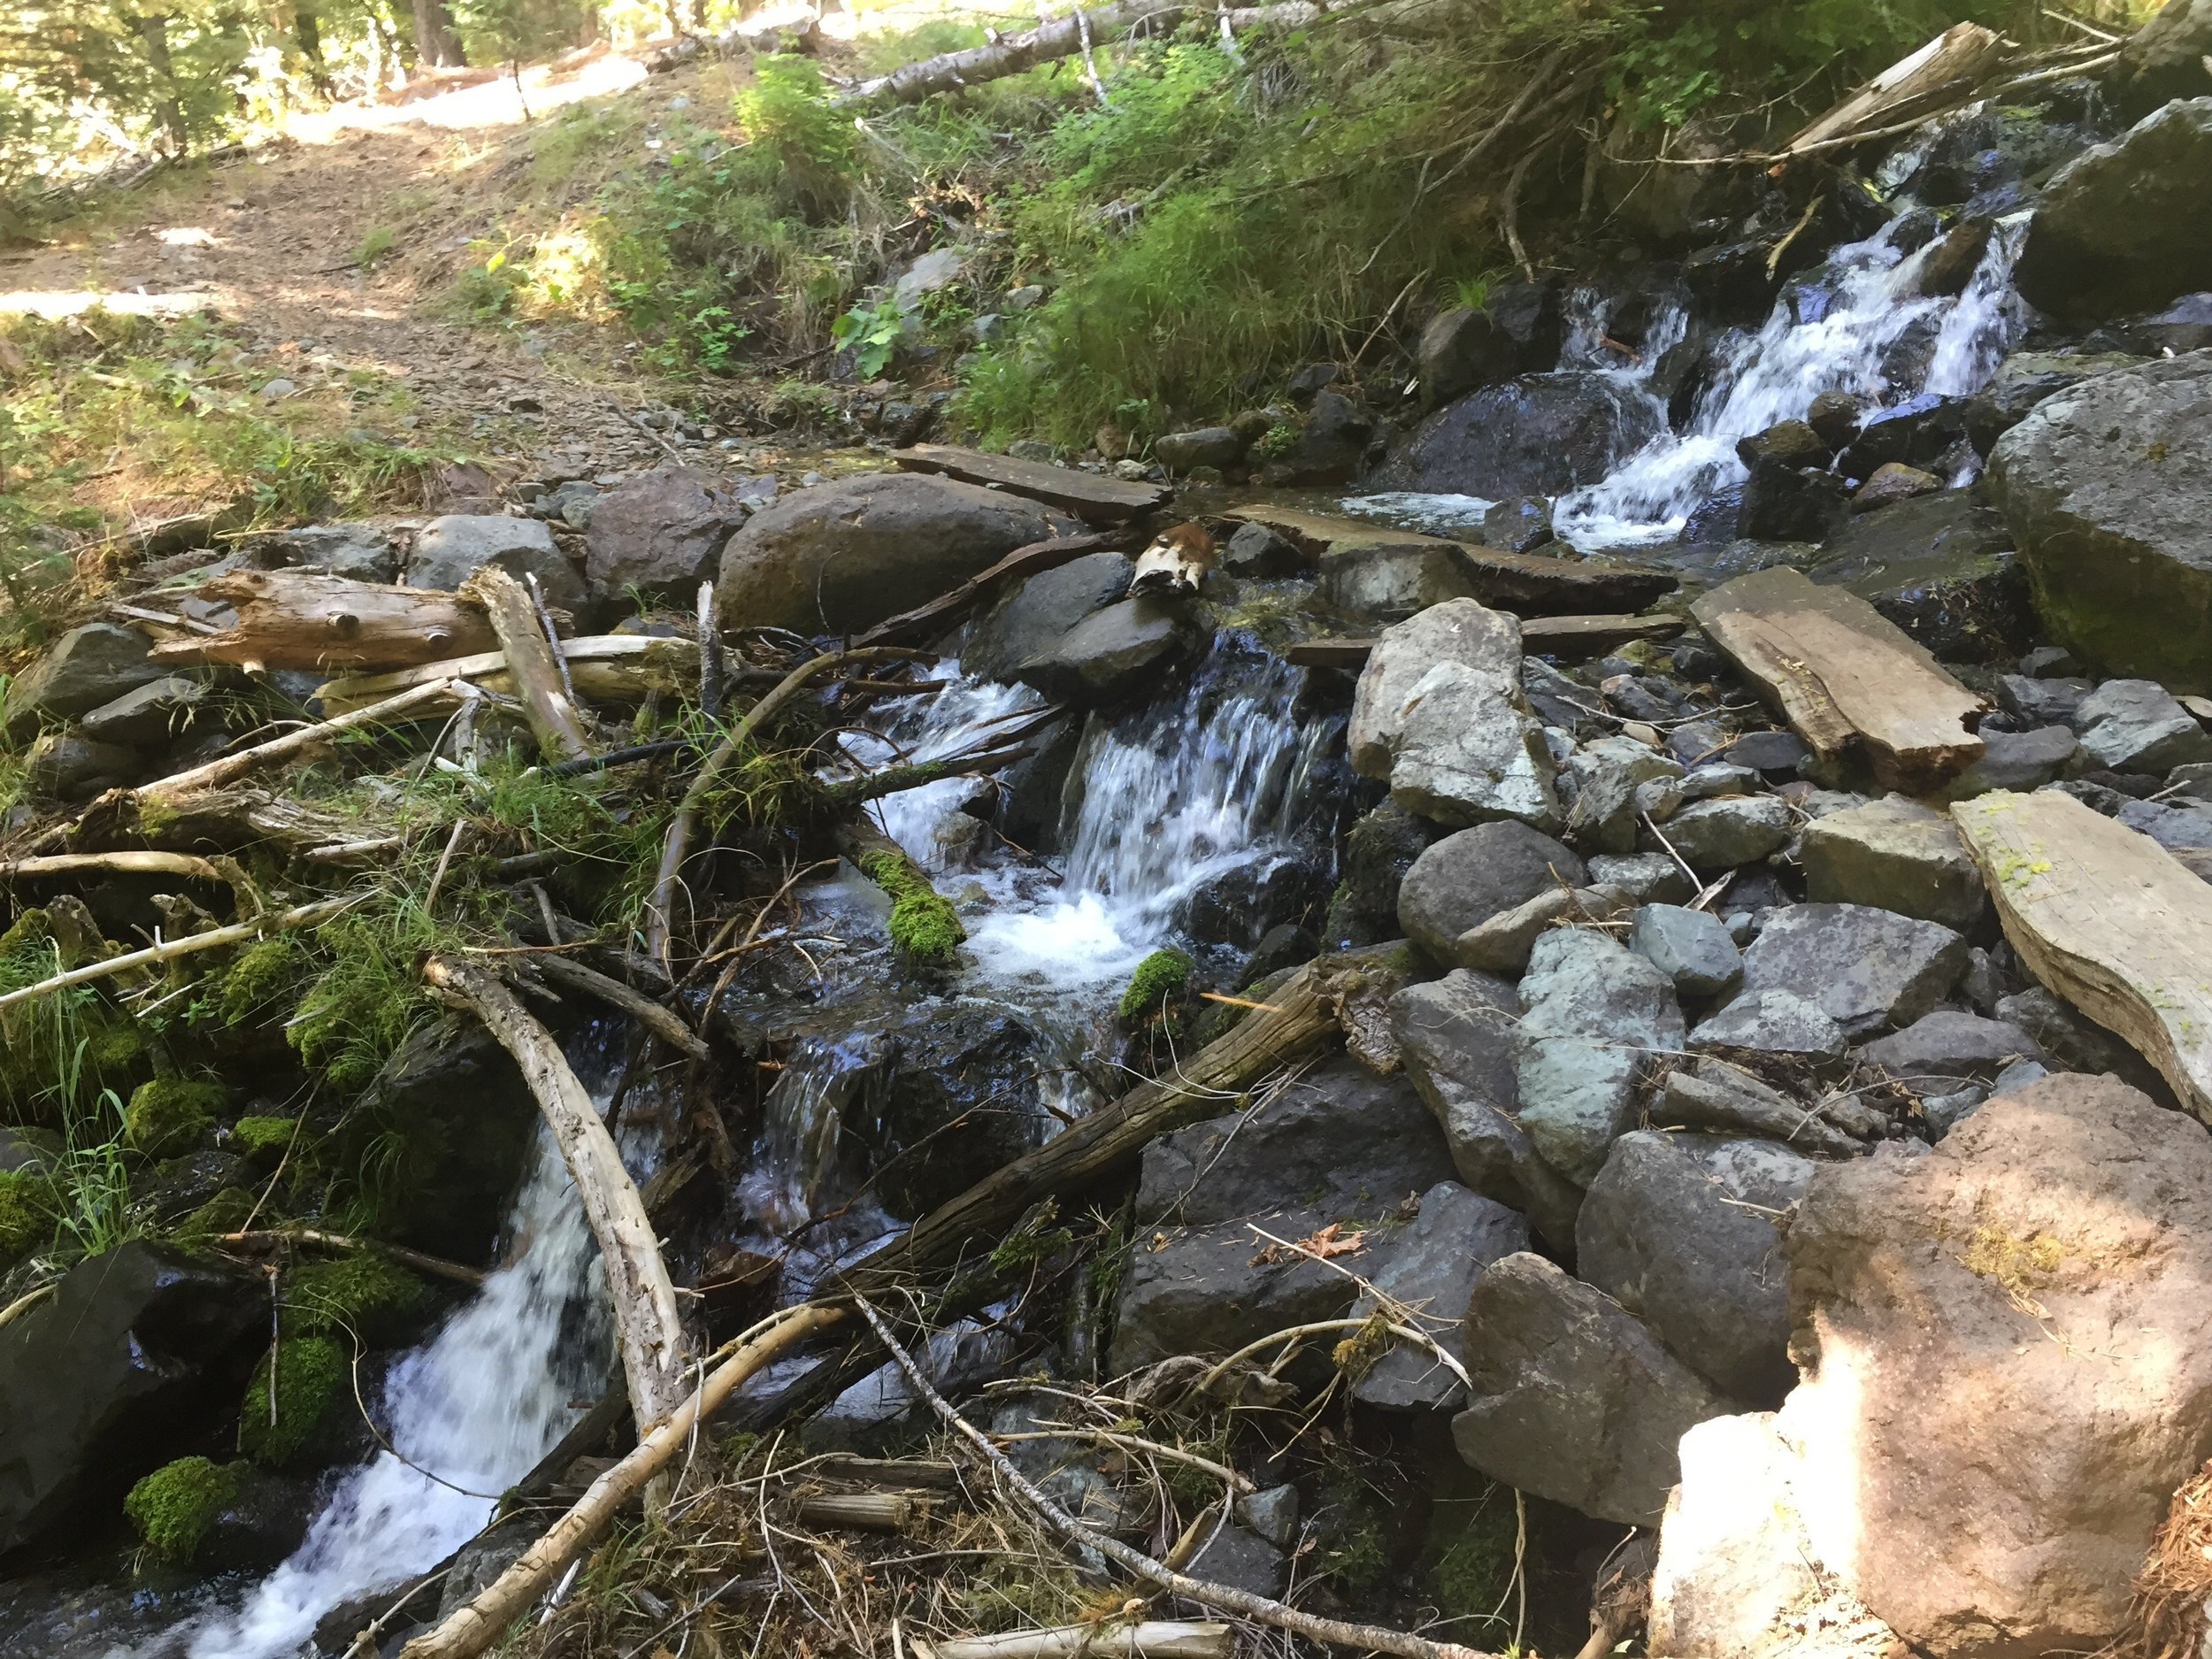 One of many creeks on the way to the Feather River Canyon